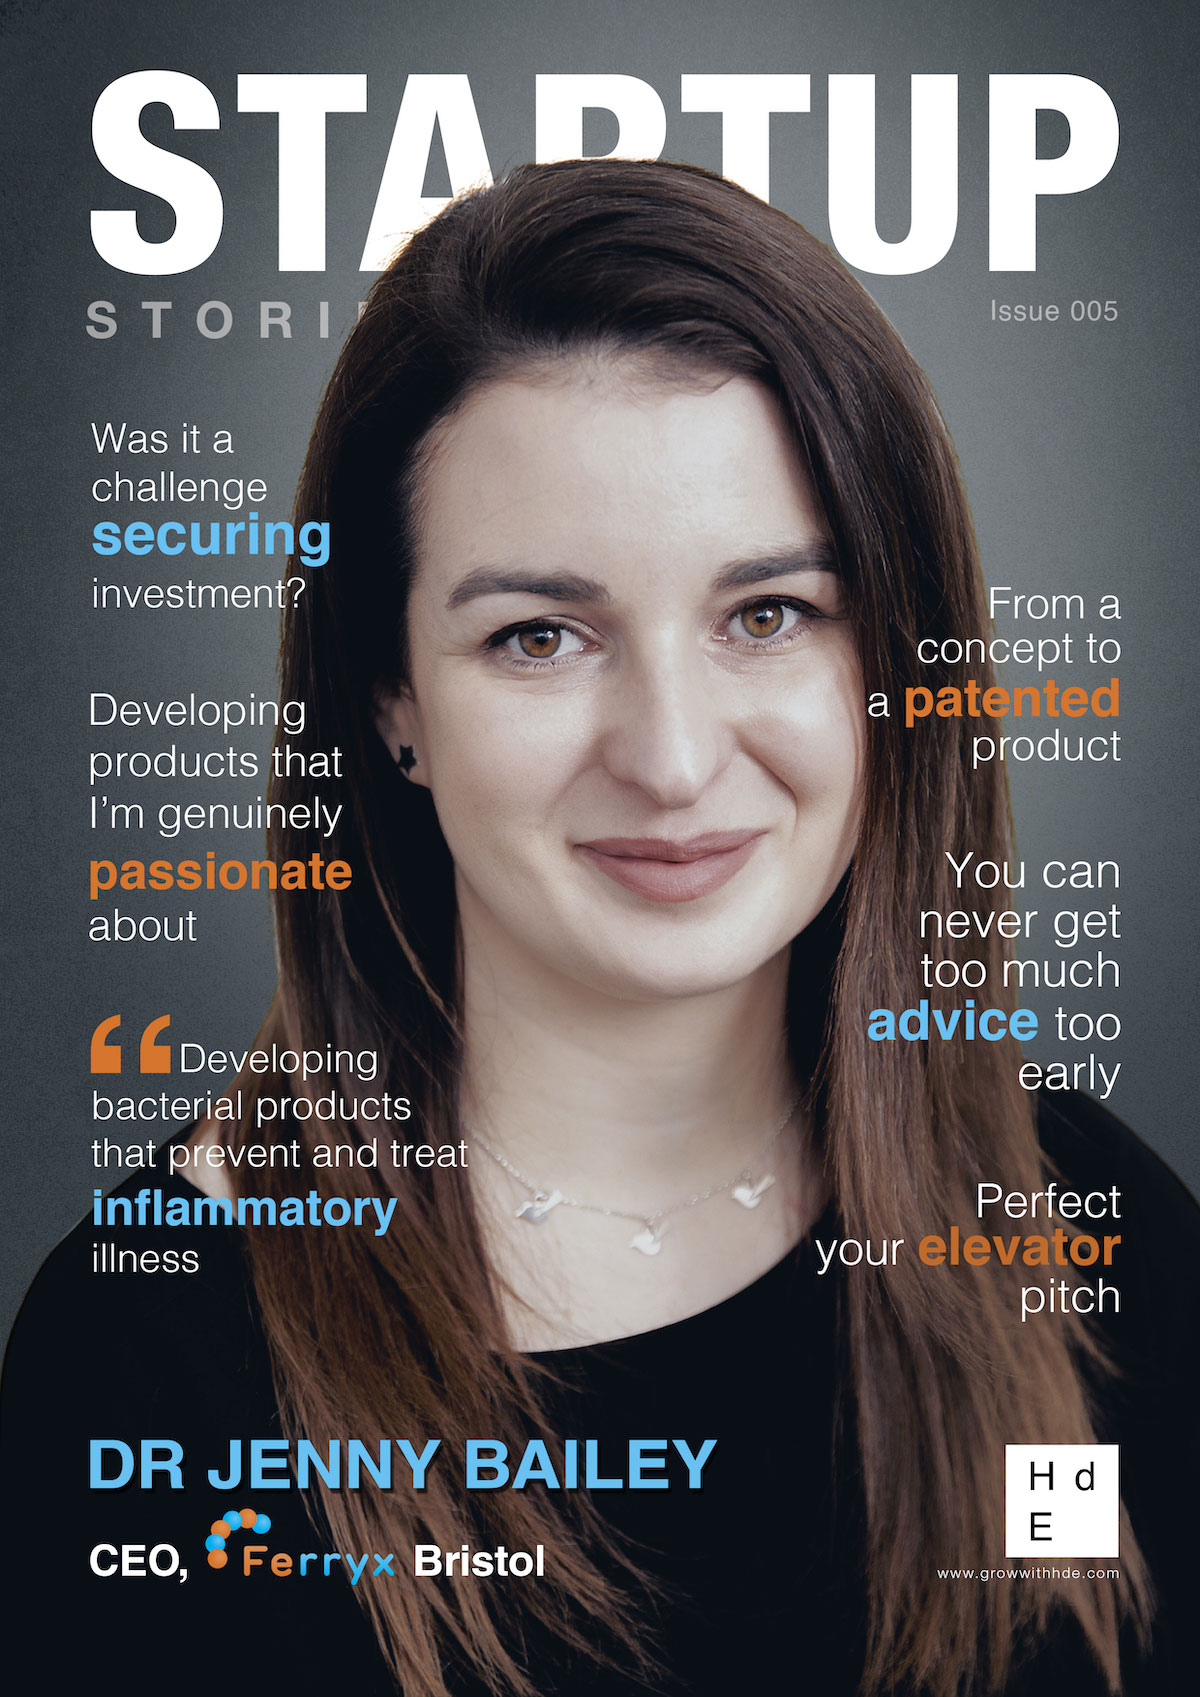 HDE_StartupStoriesIssue005(Cover)_SS_21-May-2020_V03